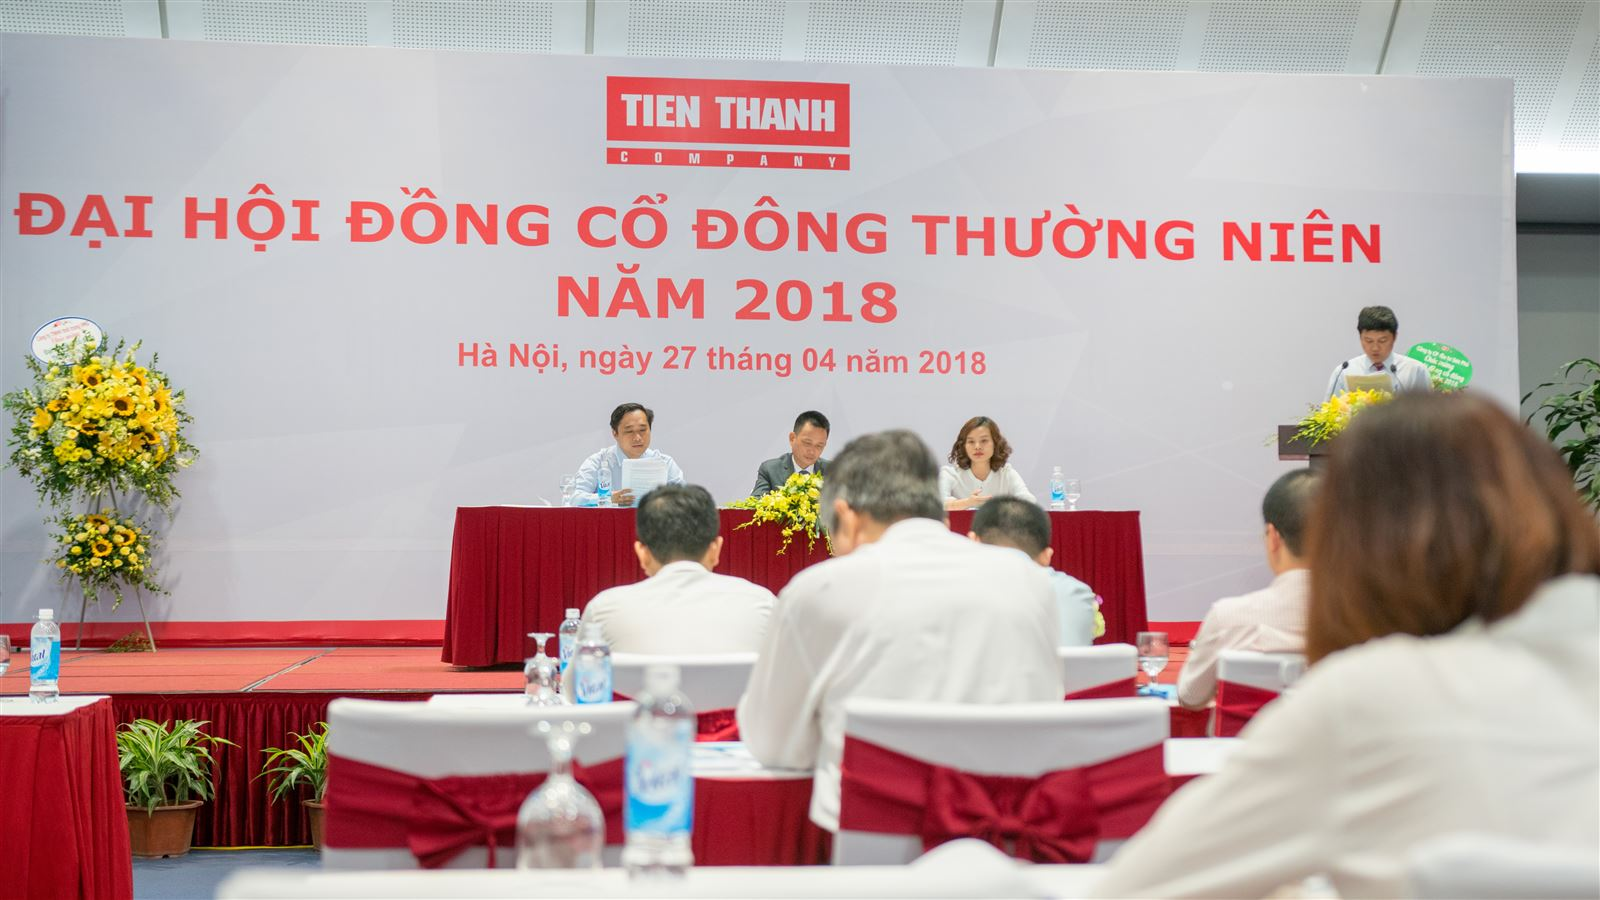 Tienthanh2018